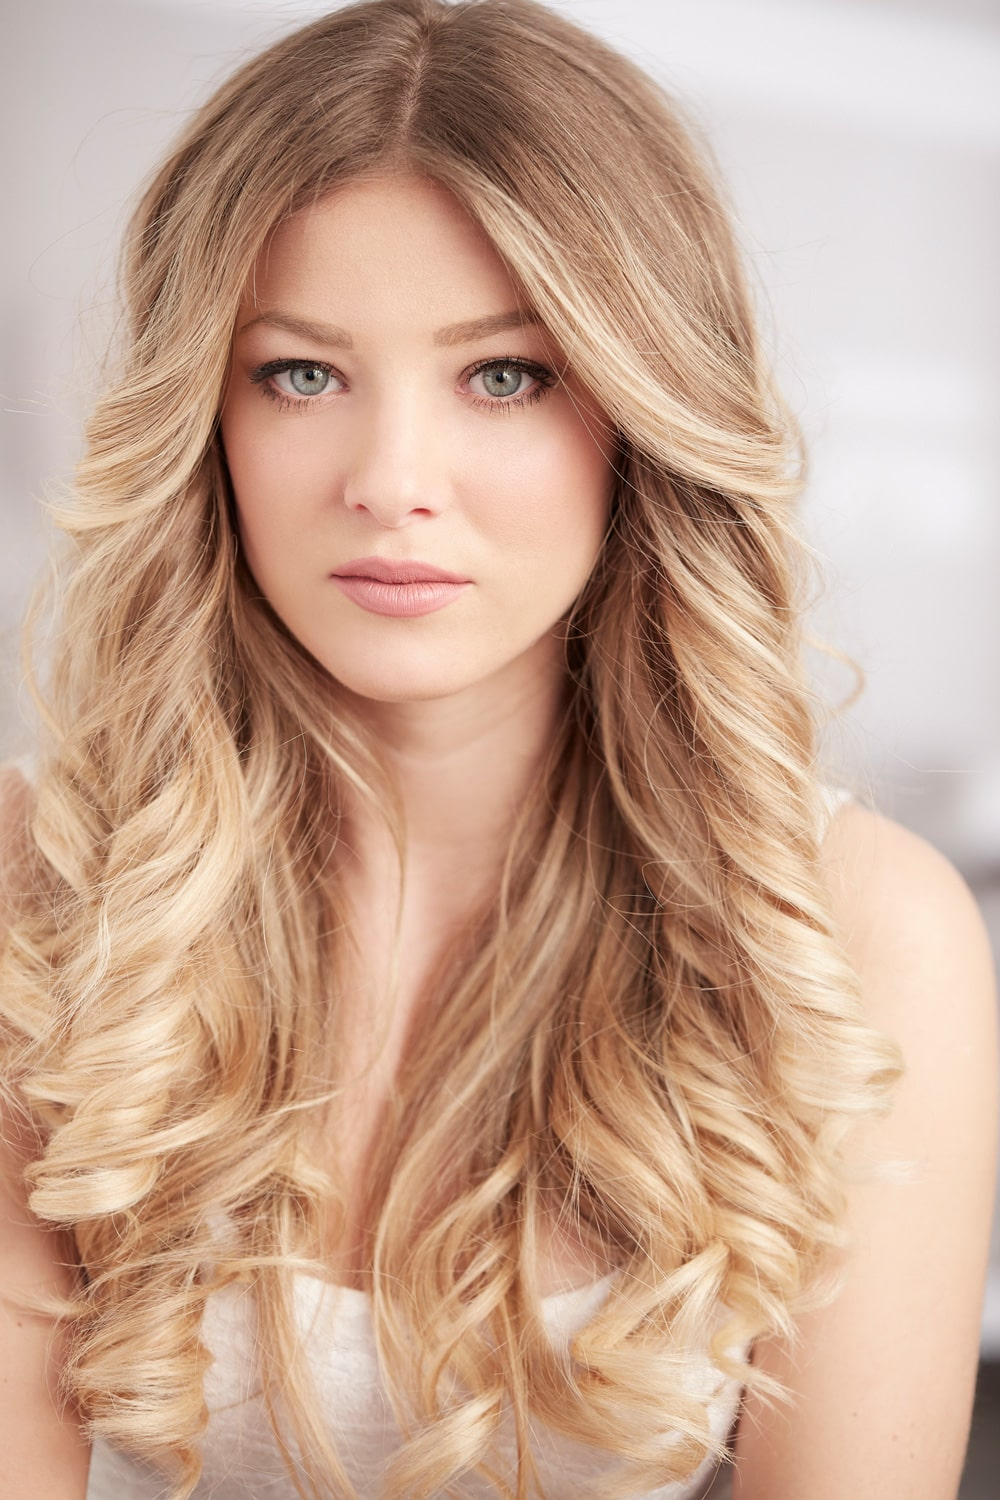 model with long dark blonde curled hair